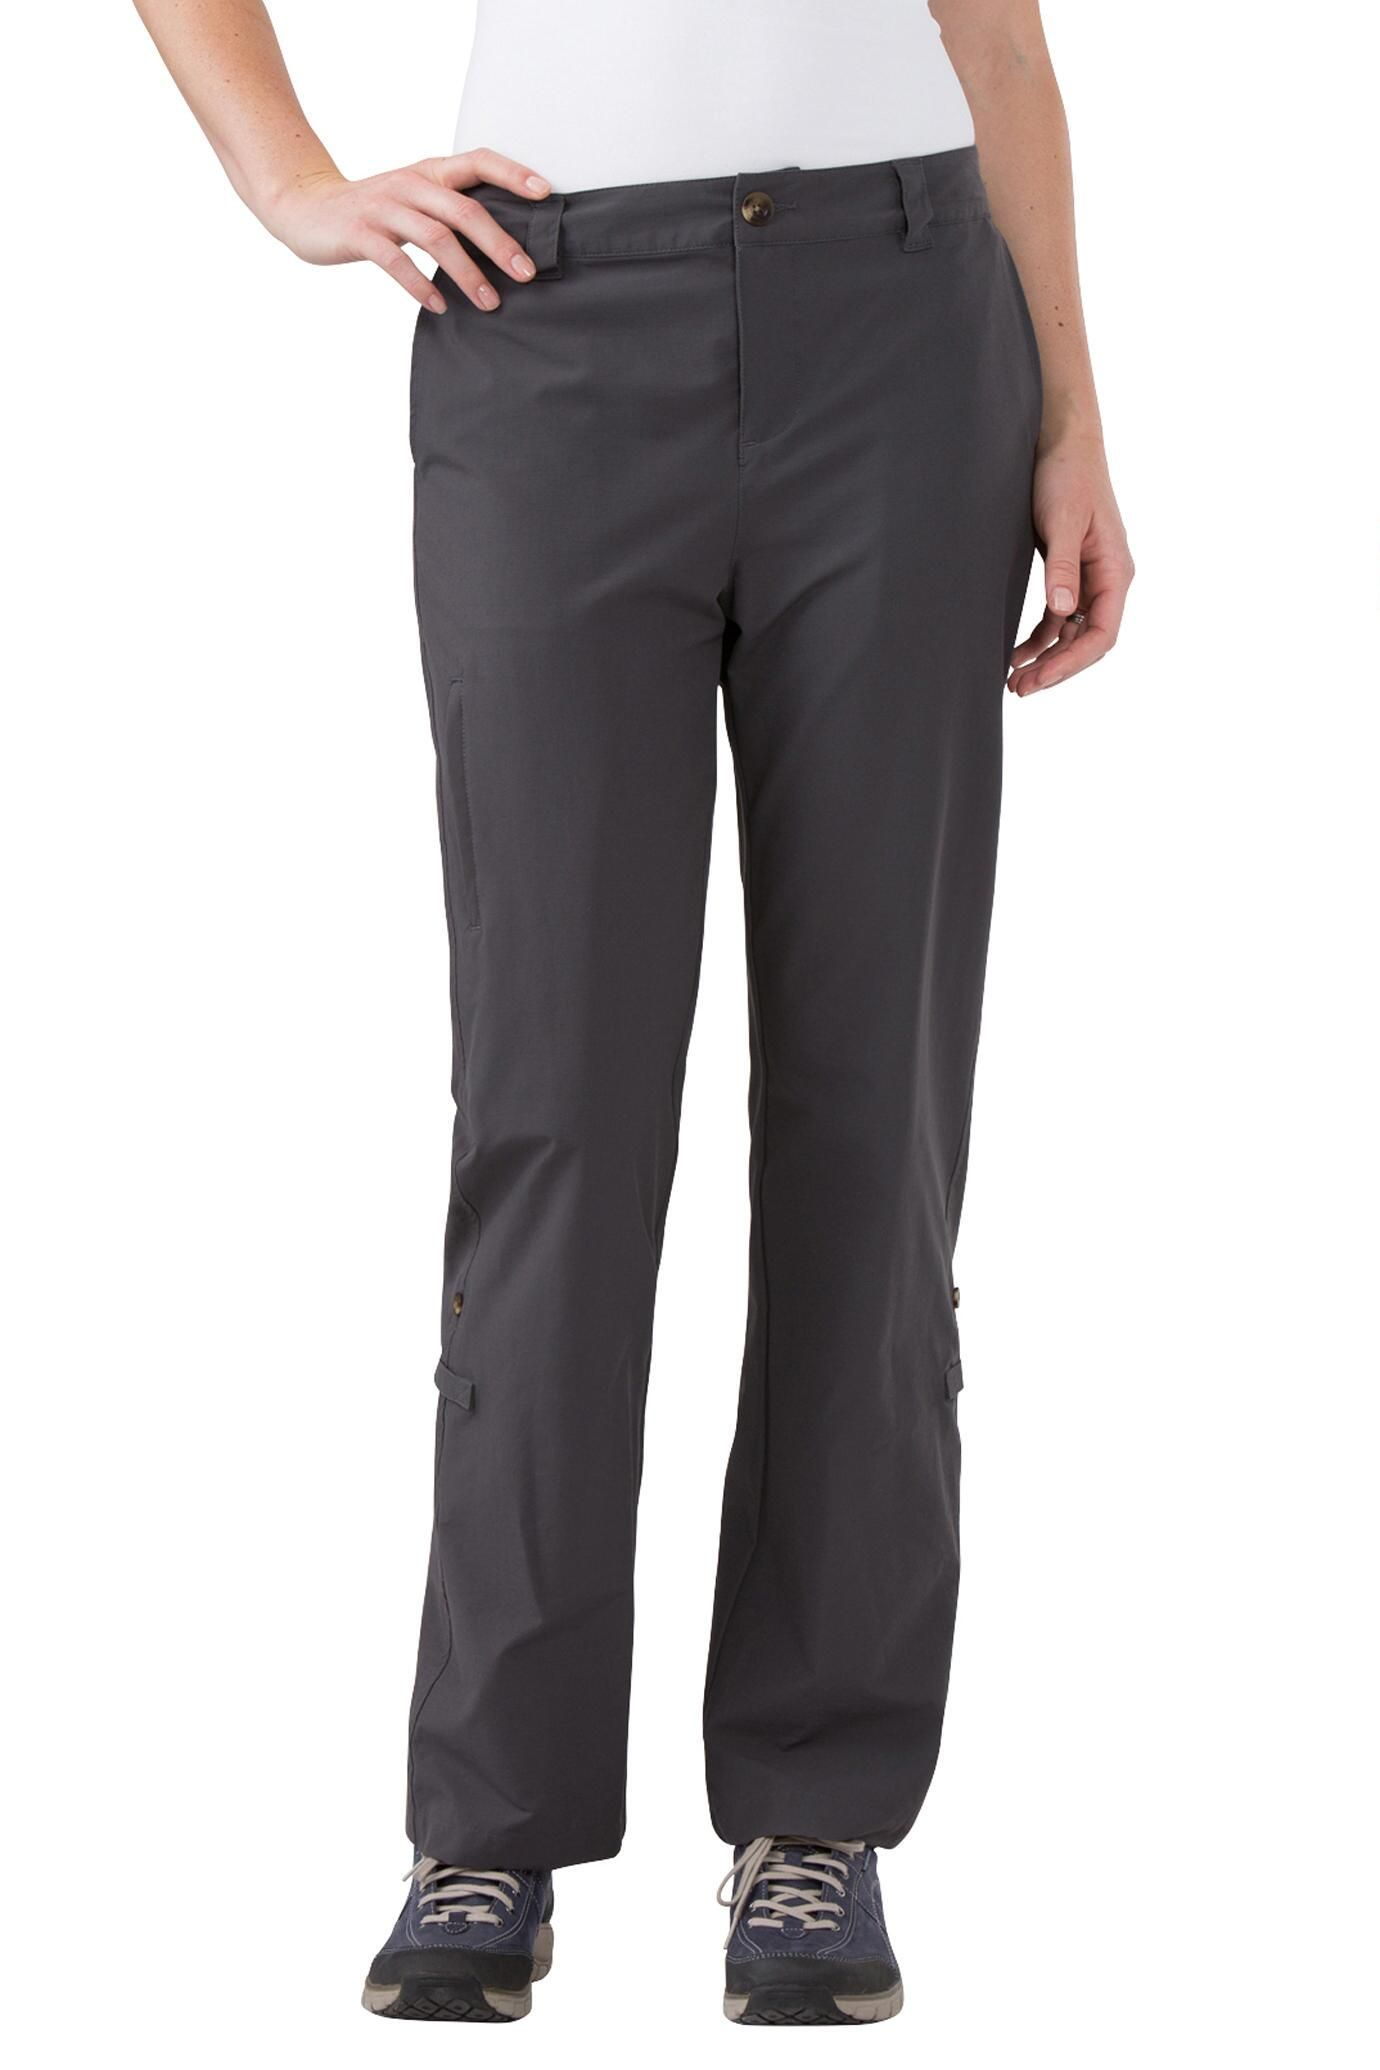 ce0cbad8657 Women s FlyAway Pants   Travelsmith  79.00 -  89.95